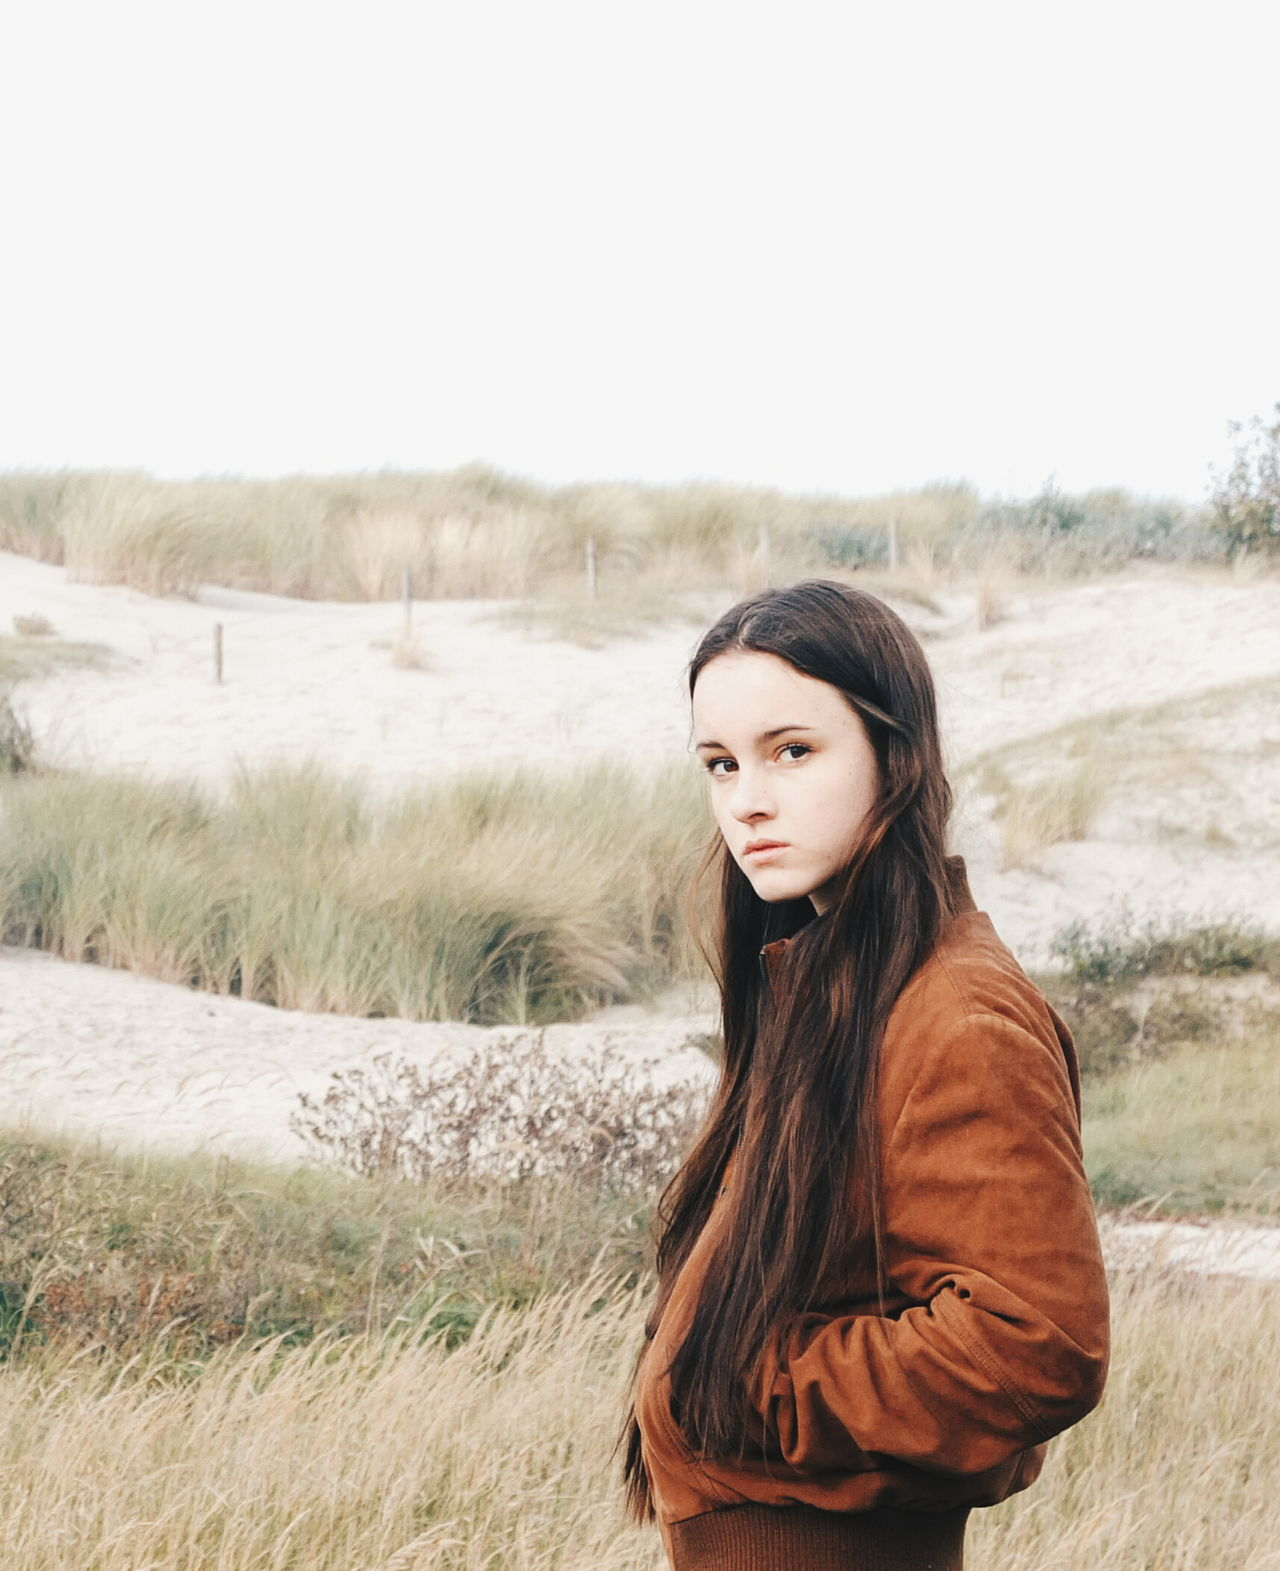 Long Hair Portrait Only Women One Person Adult People Winter Human Hair Adults Only Nature One Woman Only Leisure Activity Human Body Part Outdoors Fashion Young Adult Beauty Cold Temperature Young Women One Young Woman Only The Portraitist - 2017 EyeEm Awards